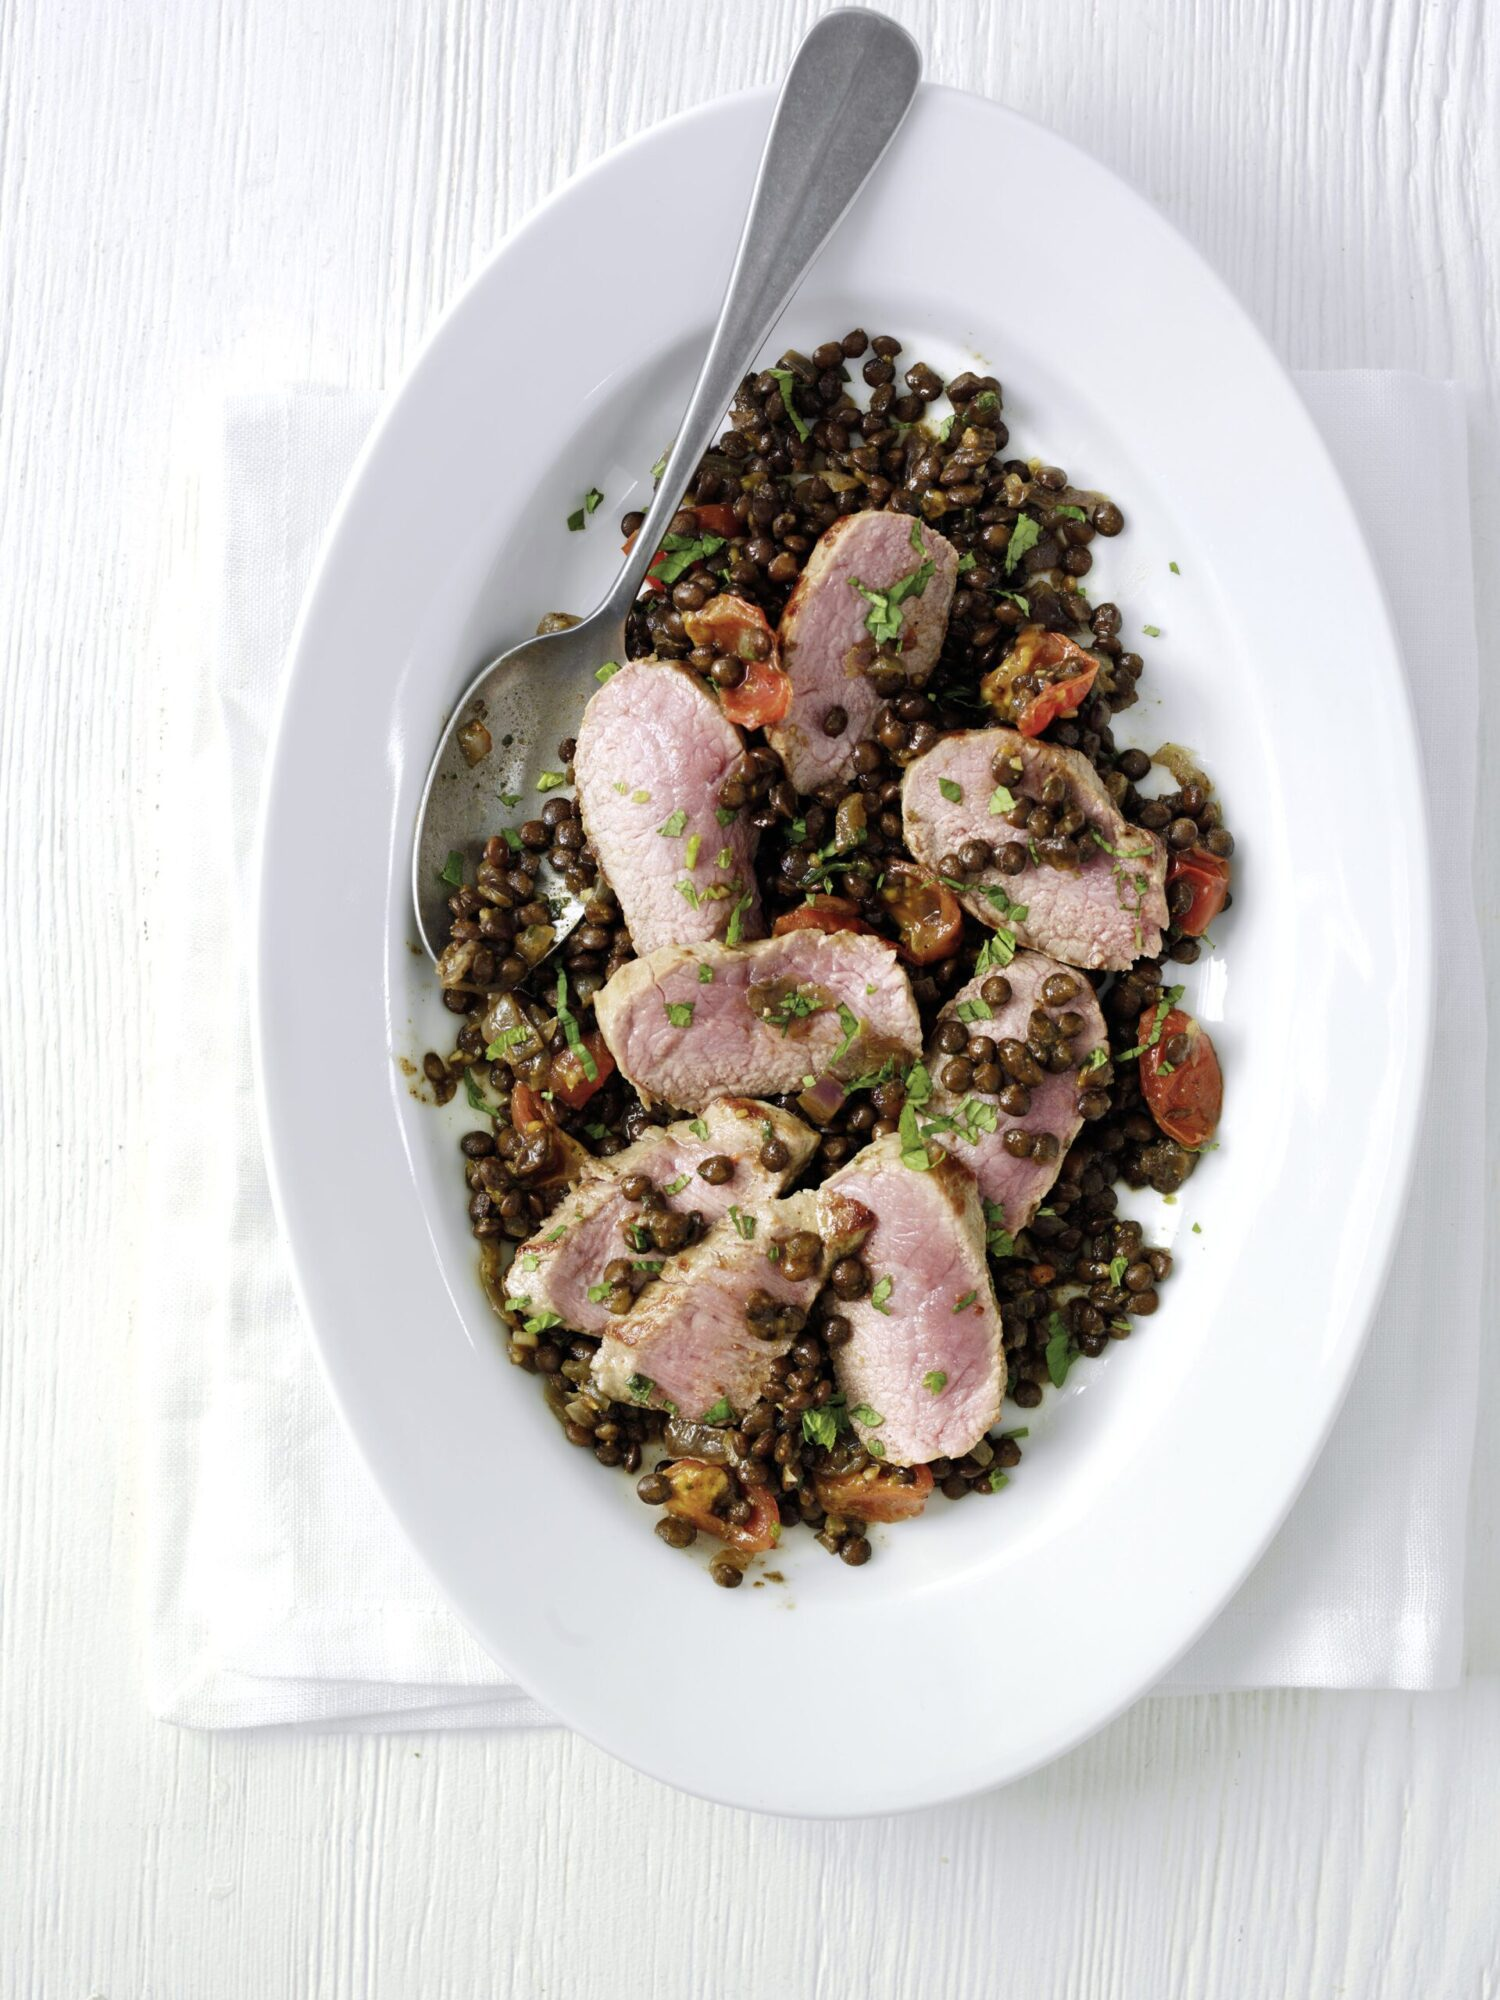 Pan Seared Coconut Cannon of Lamb with Puy Lentils (Simply Beef and Lamb)